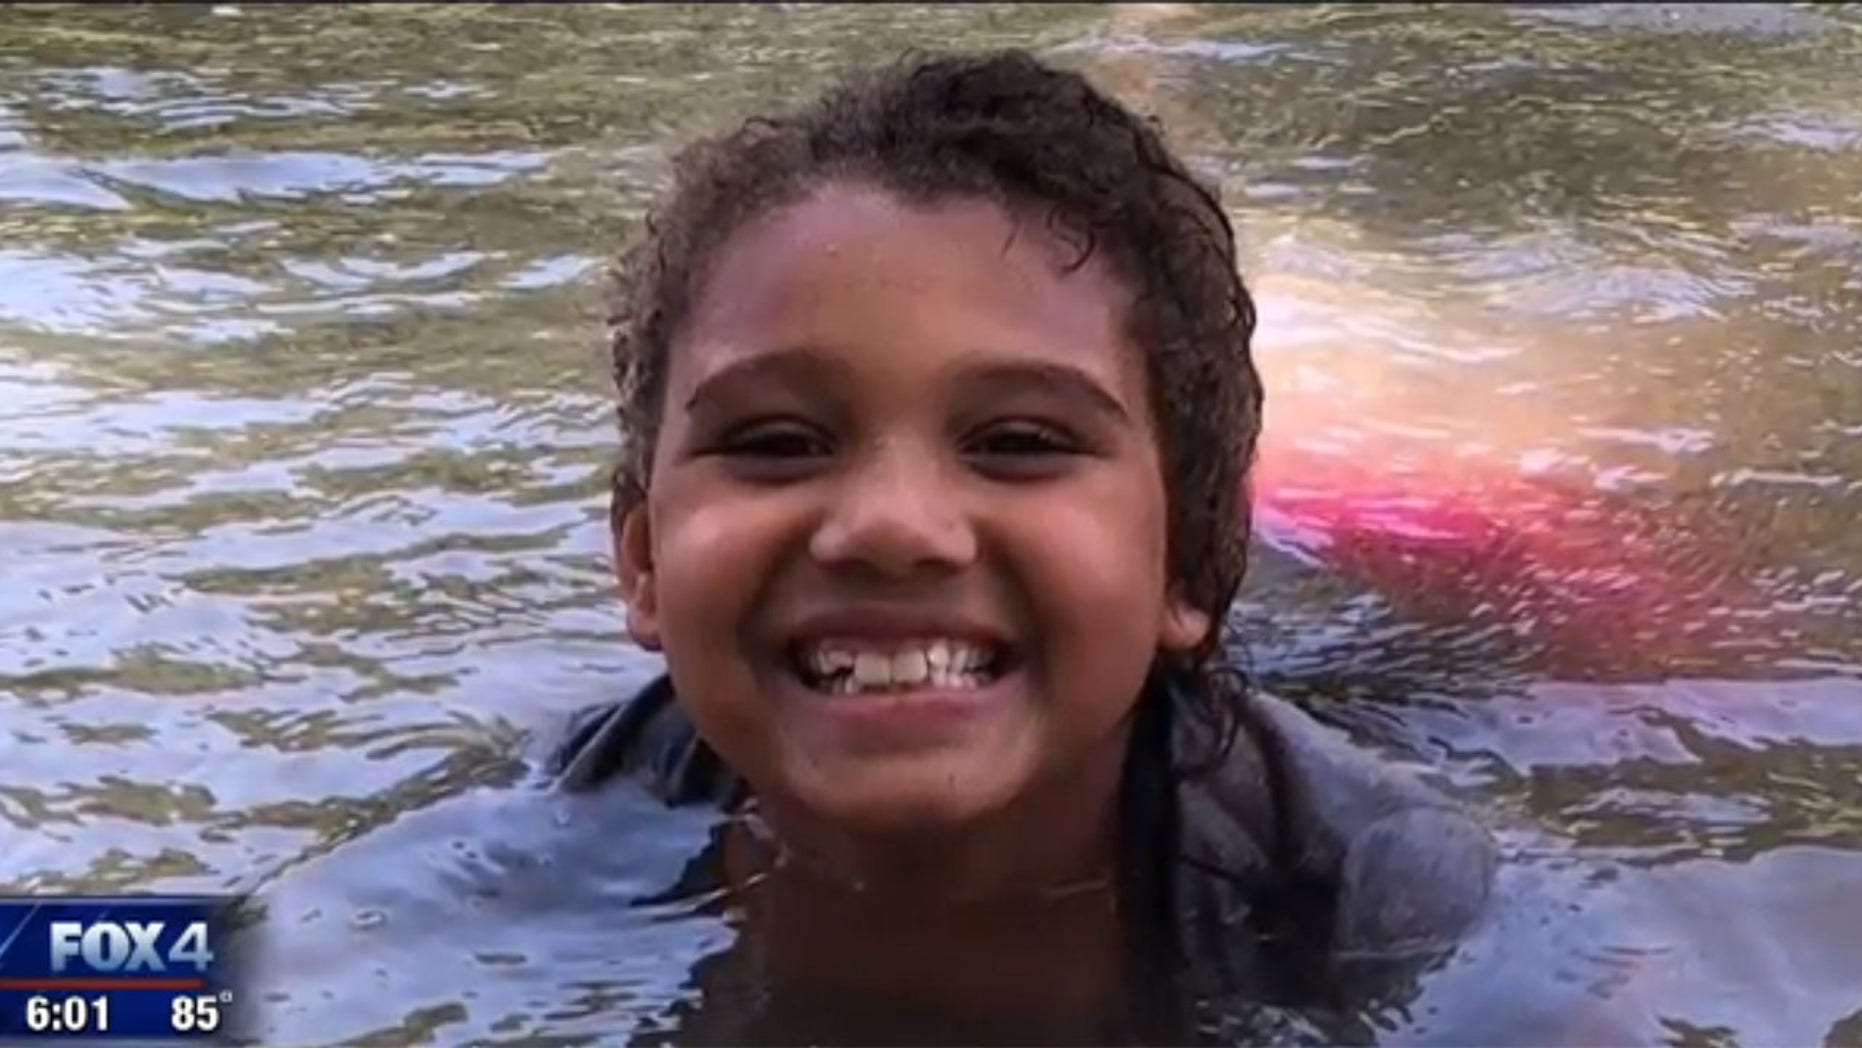 Payton Summons, 9, was declared brain dead by doctors at Cook Children's Medical Center.